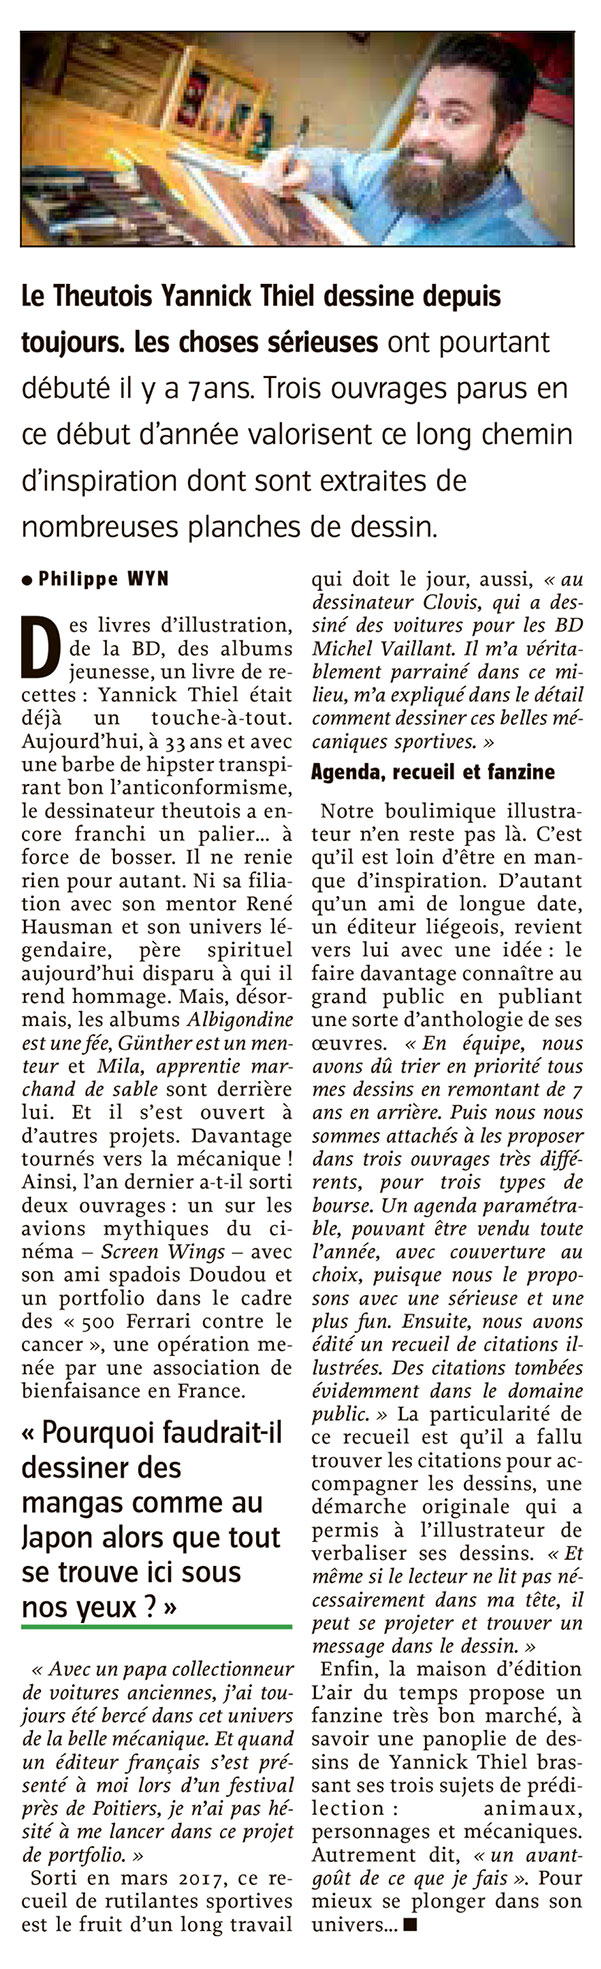 Article l'Avenir 2018 Yannick Thiel